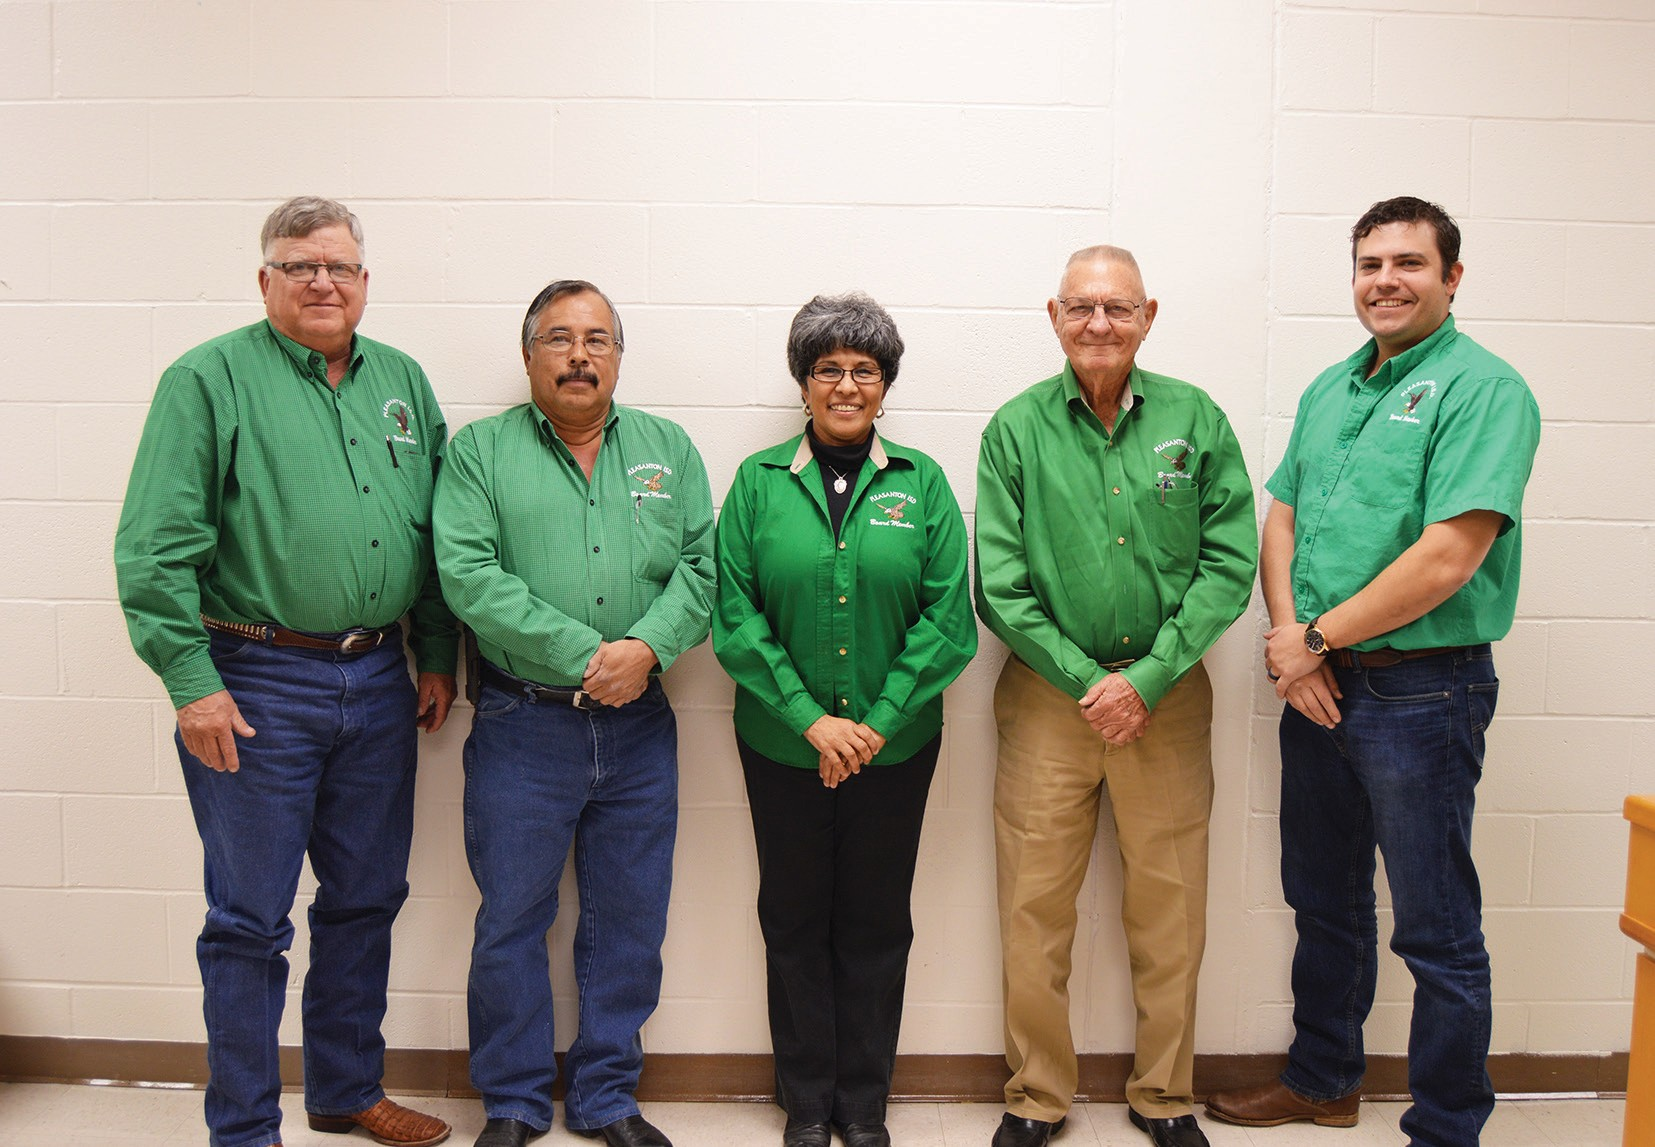 Pleasanton ISD's School board members were given personalized jackets at the January 12 meeting in recognition of School Board Appreciation Month. Left to right are: Pete Pawelek, District 7; Edward Zamarripa, District 2; Blasa Chapa, District 1; President Frank Tudyk, District 3; and Secretary Joseph Warnken. District 6; Missing were Vice President Jamie Downs, District 5 and Pat Seay Cox, District 4.